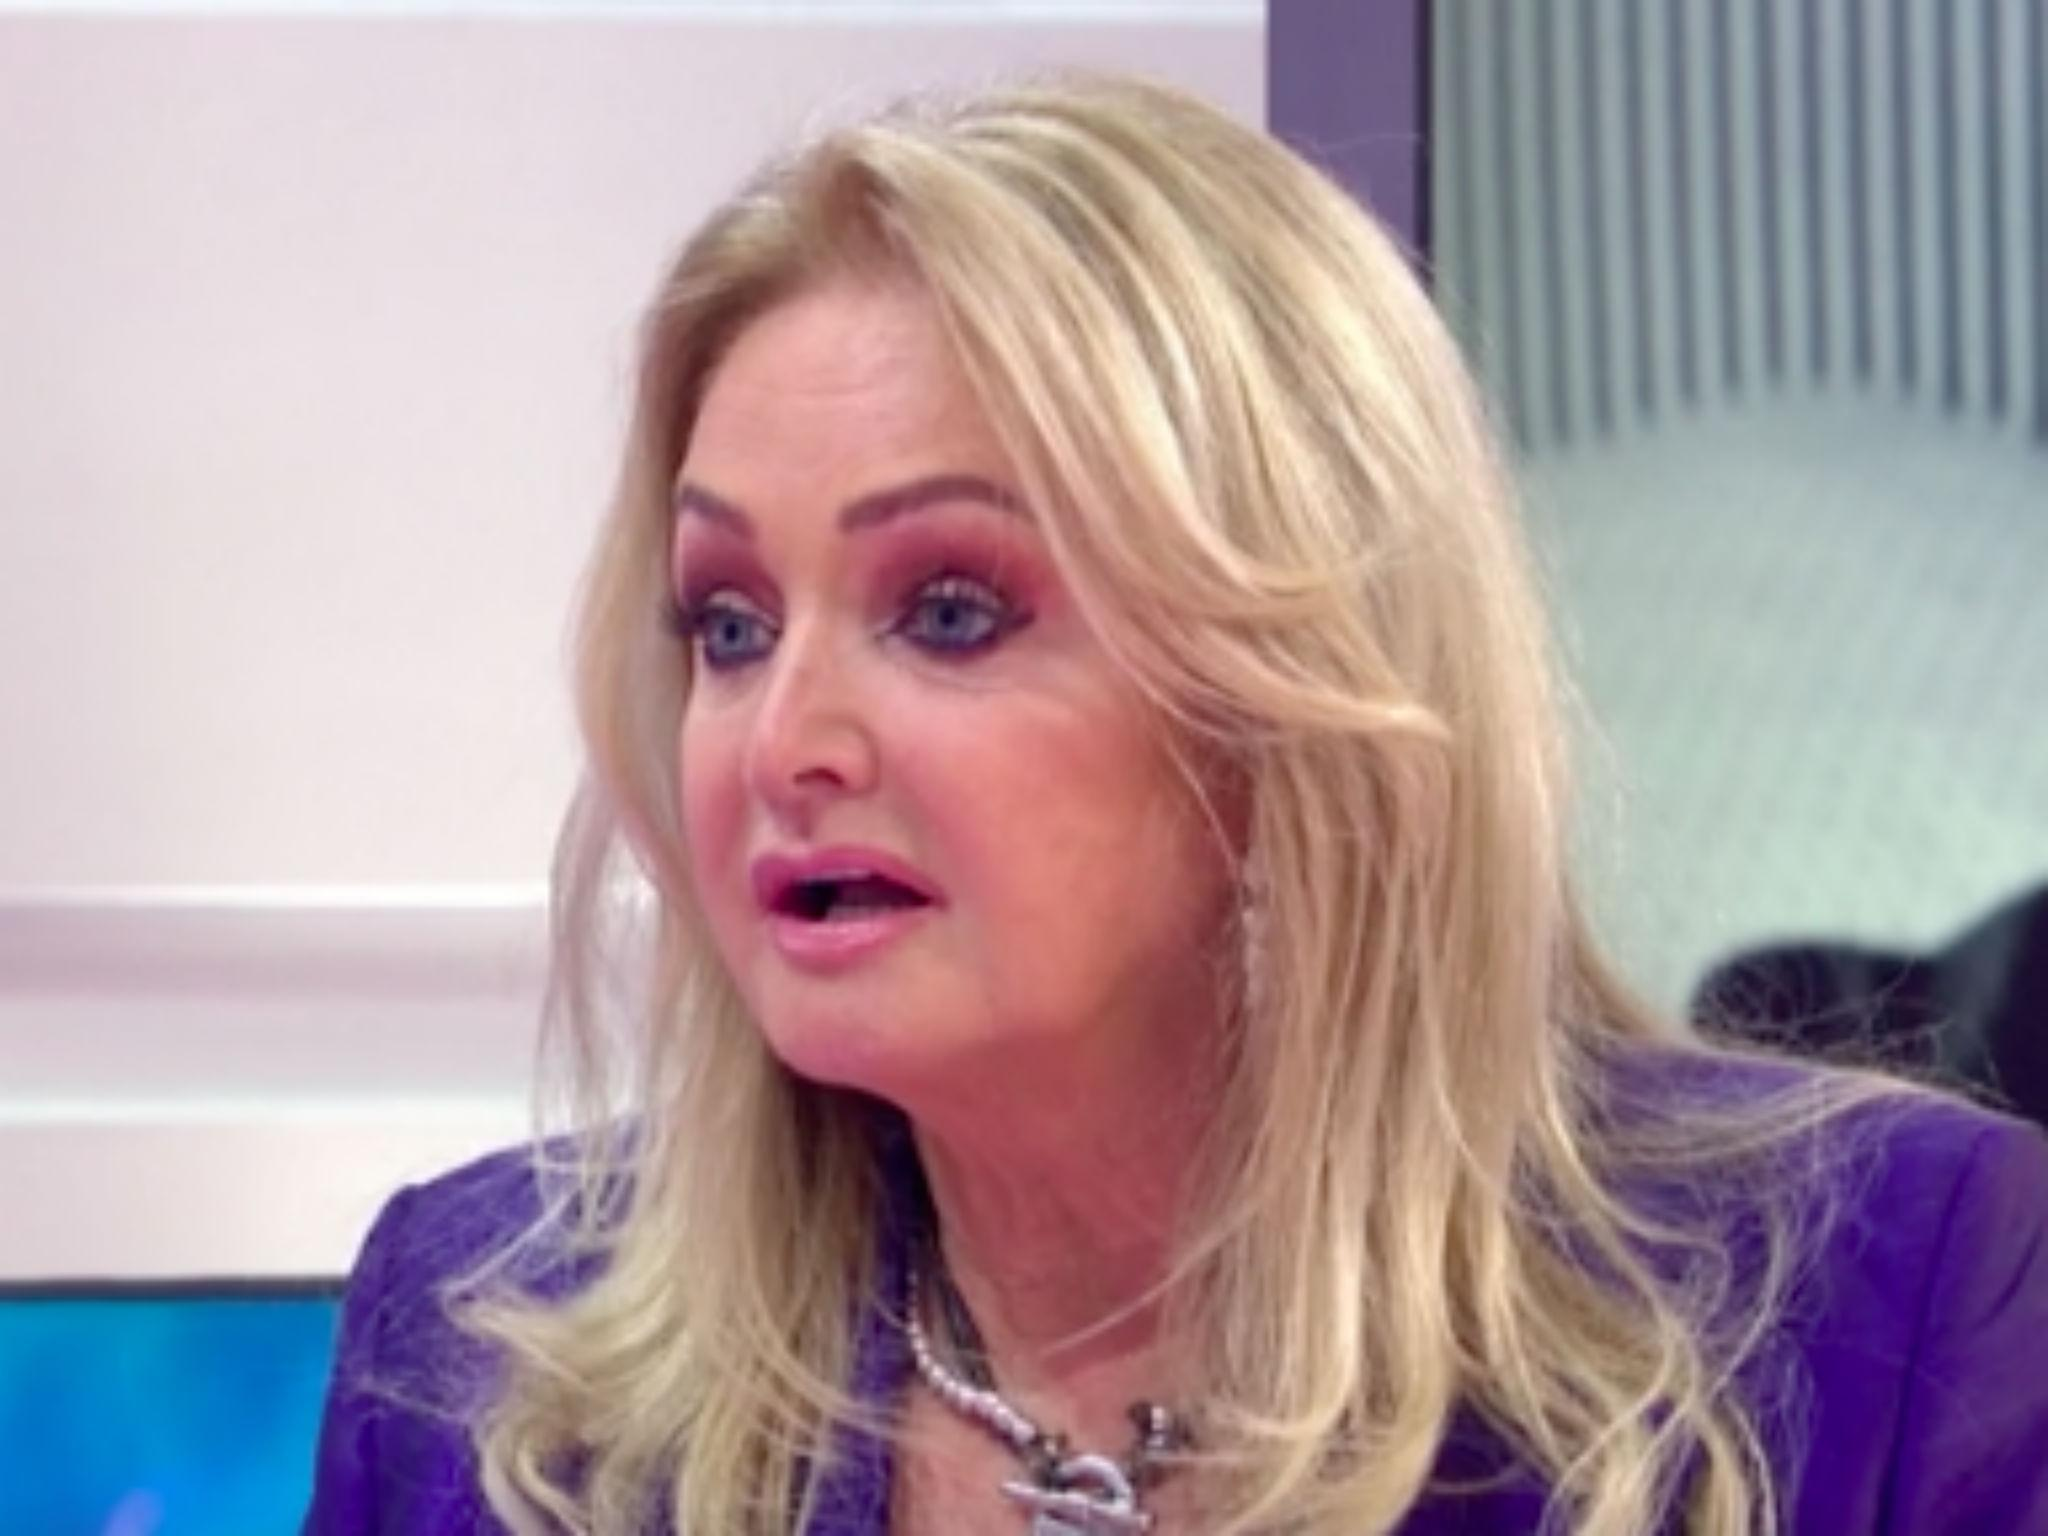 Bonnie Tyler confused as Good Morning Britain mistakes her for own tribute act: 'That's not me!'